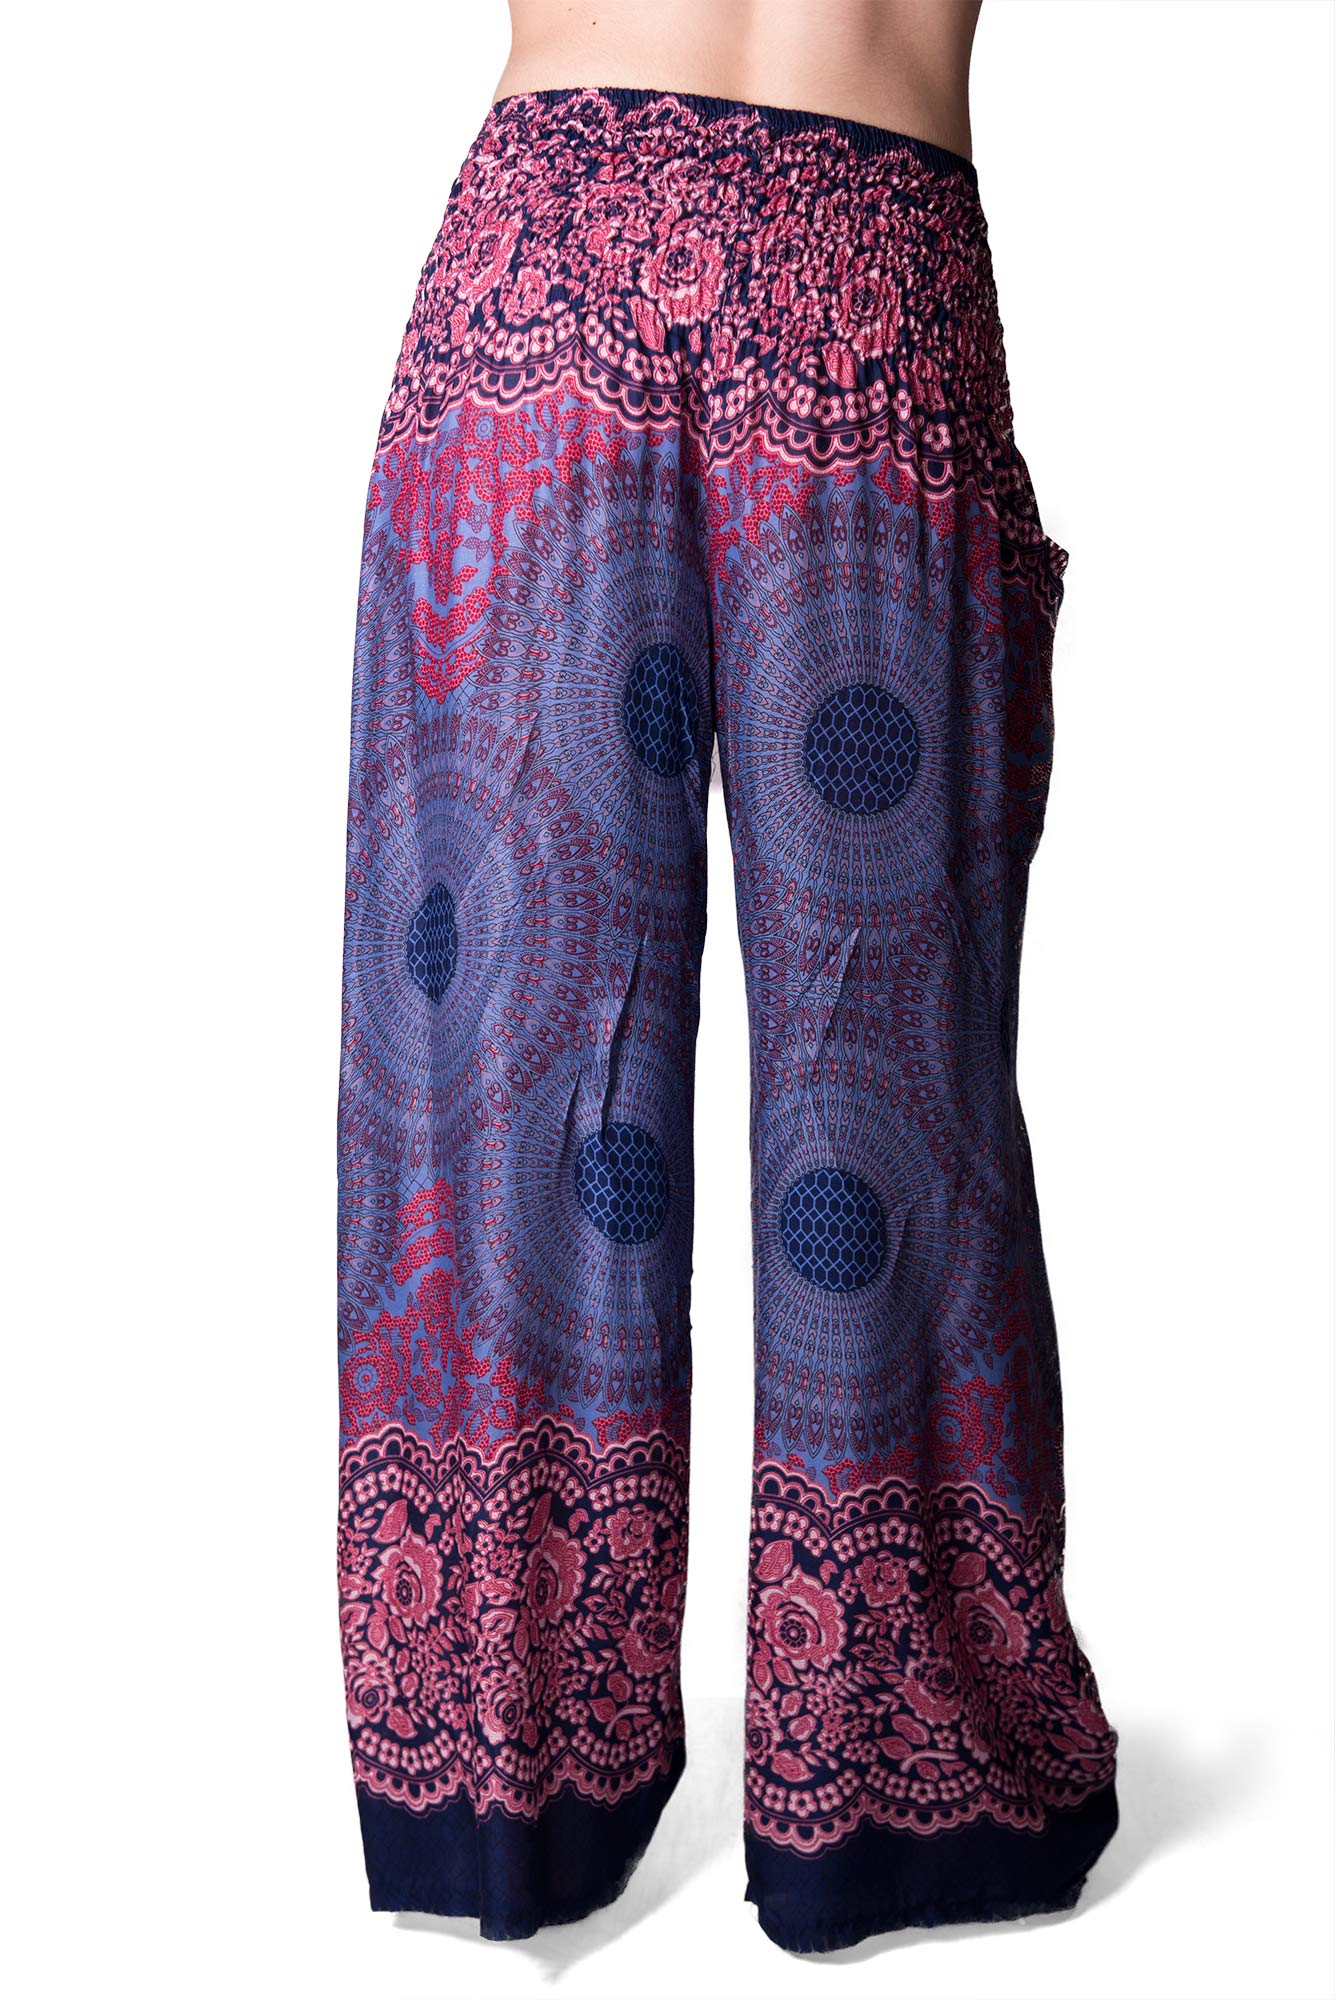 Honeycomb Print, Wide Leg Pants , Blue